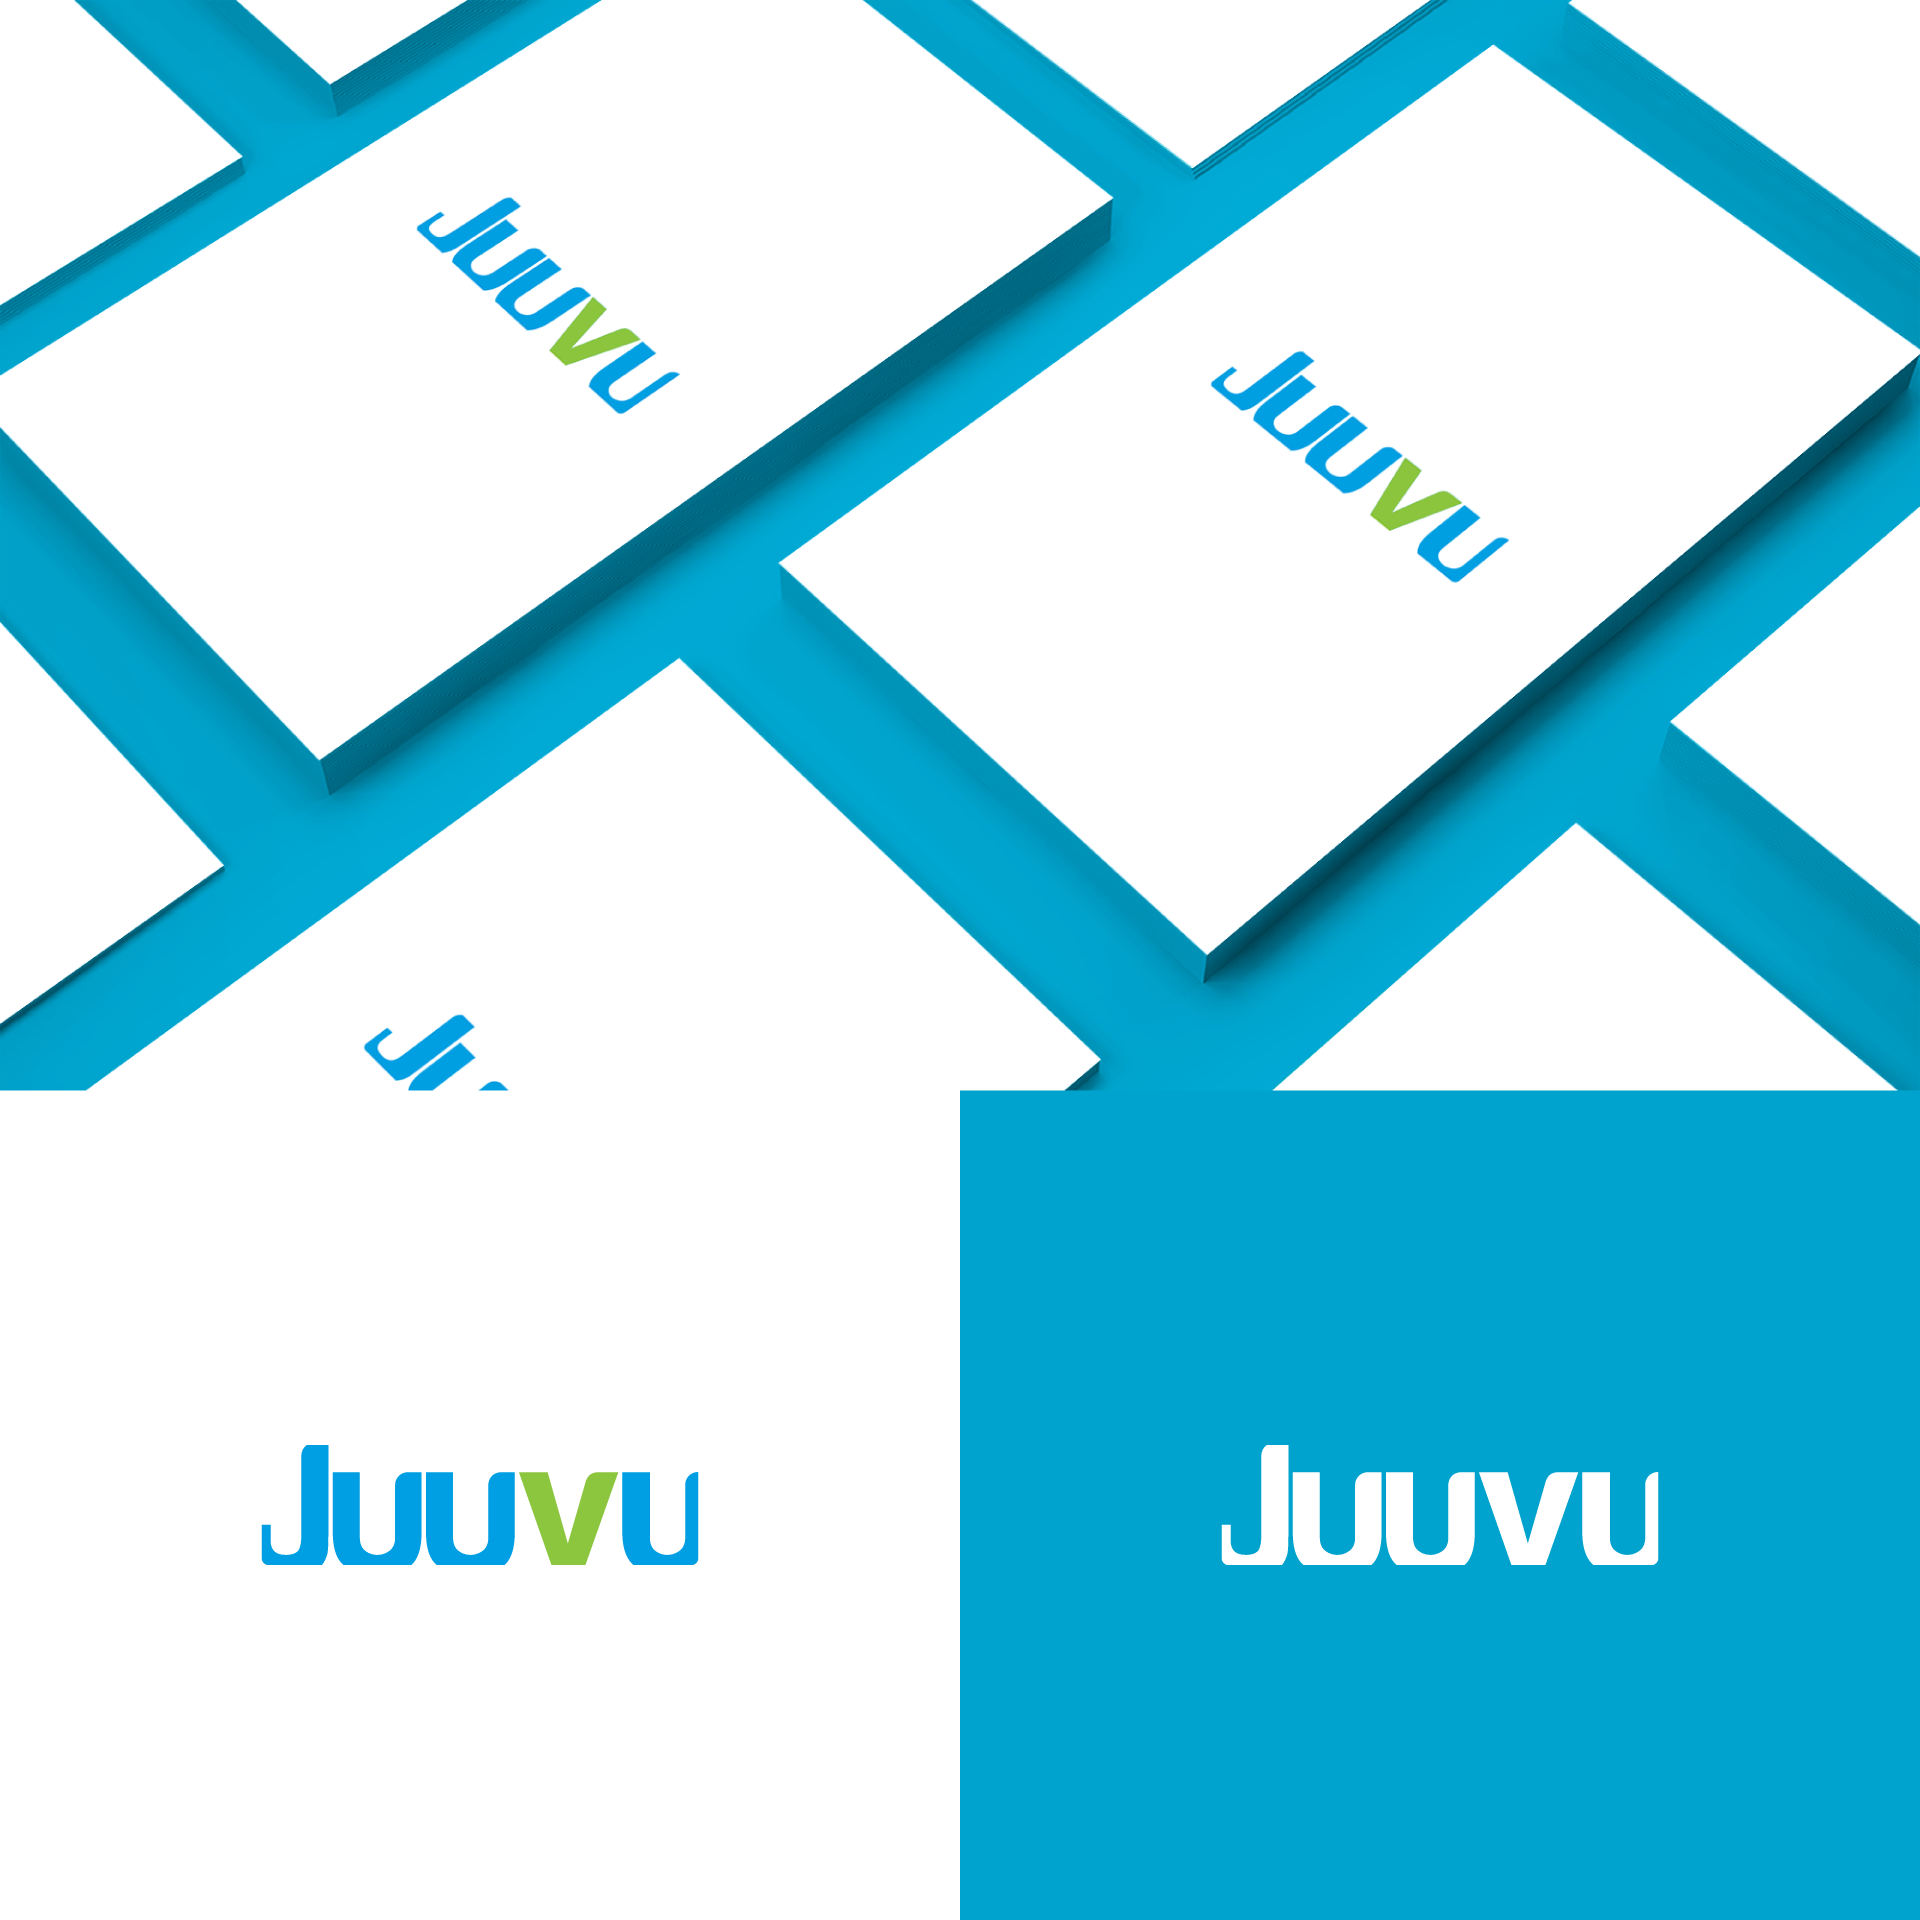 juuvu-square-01.png